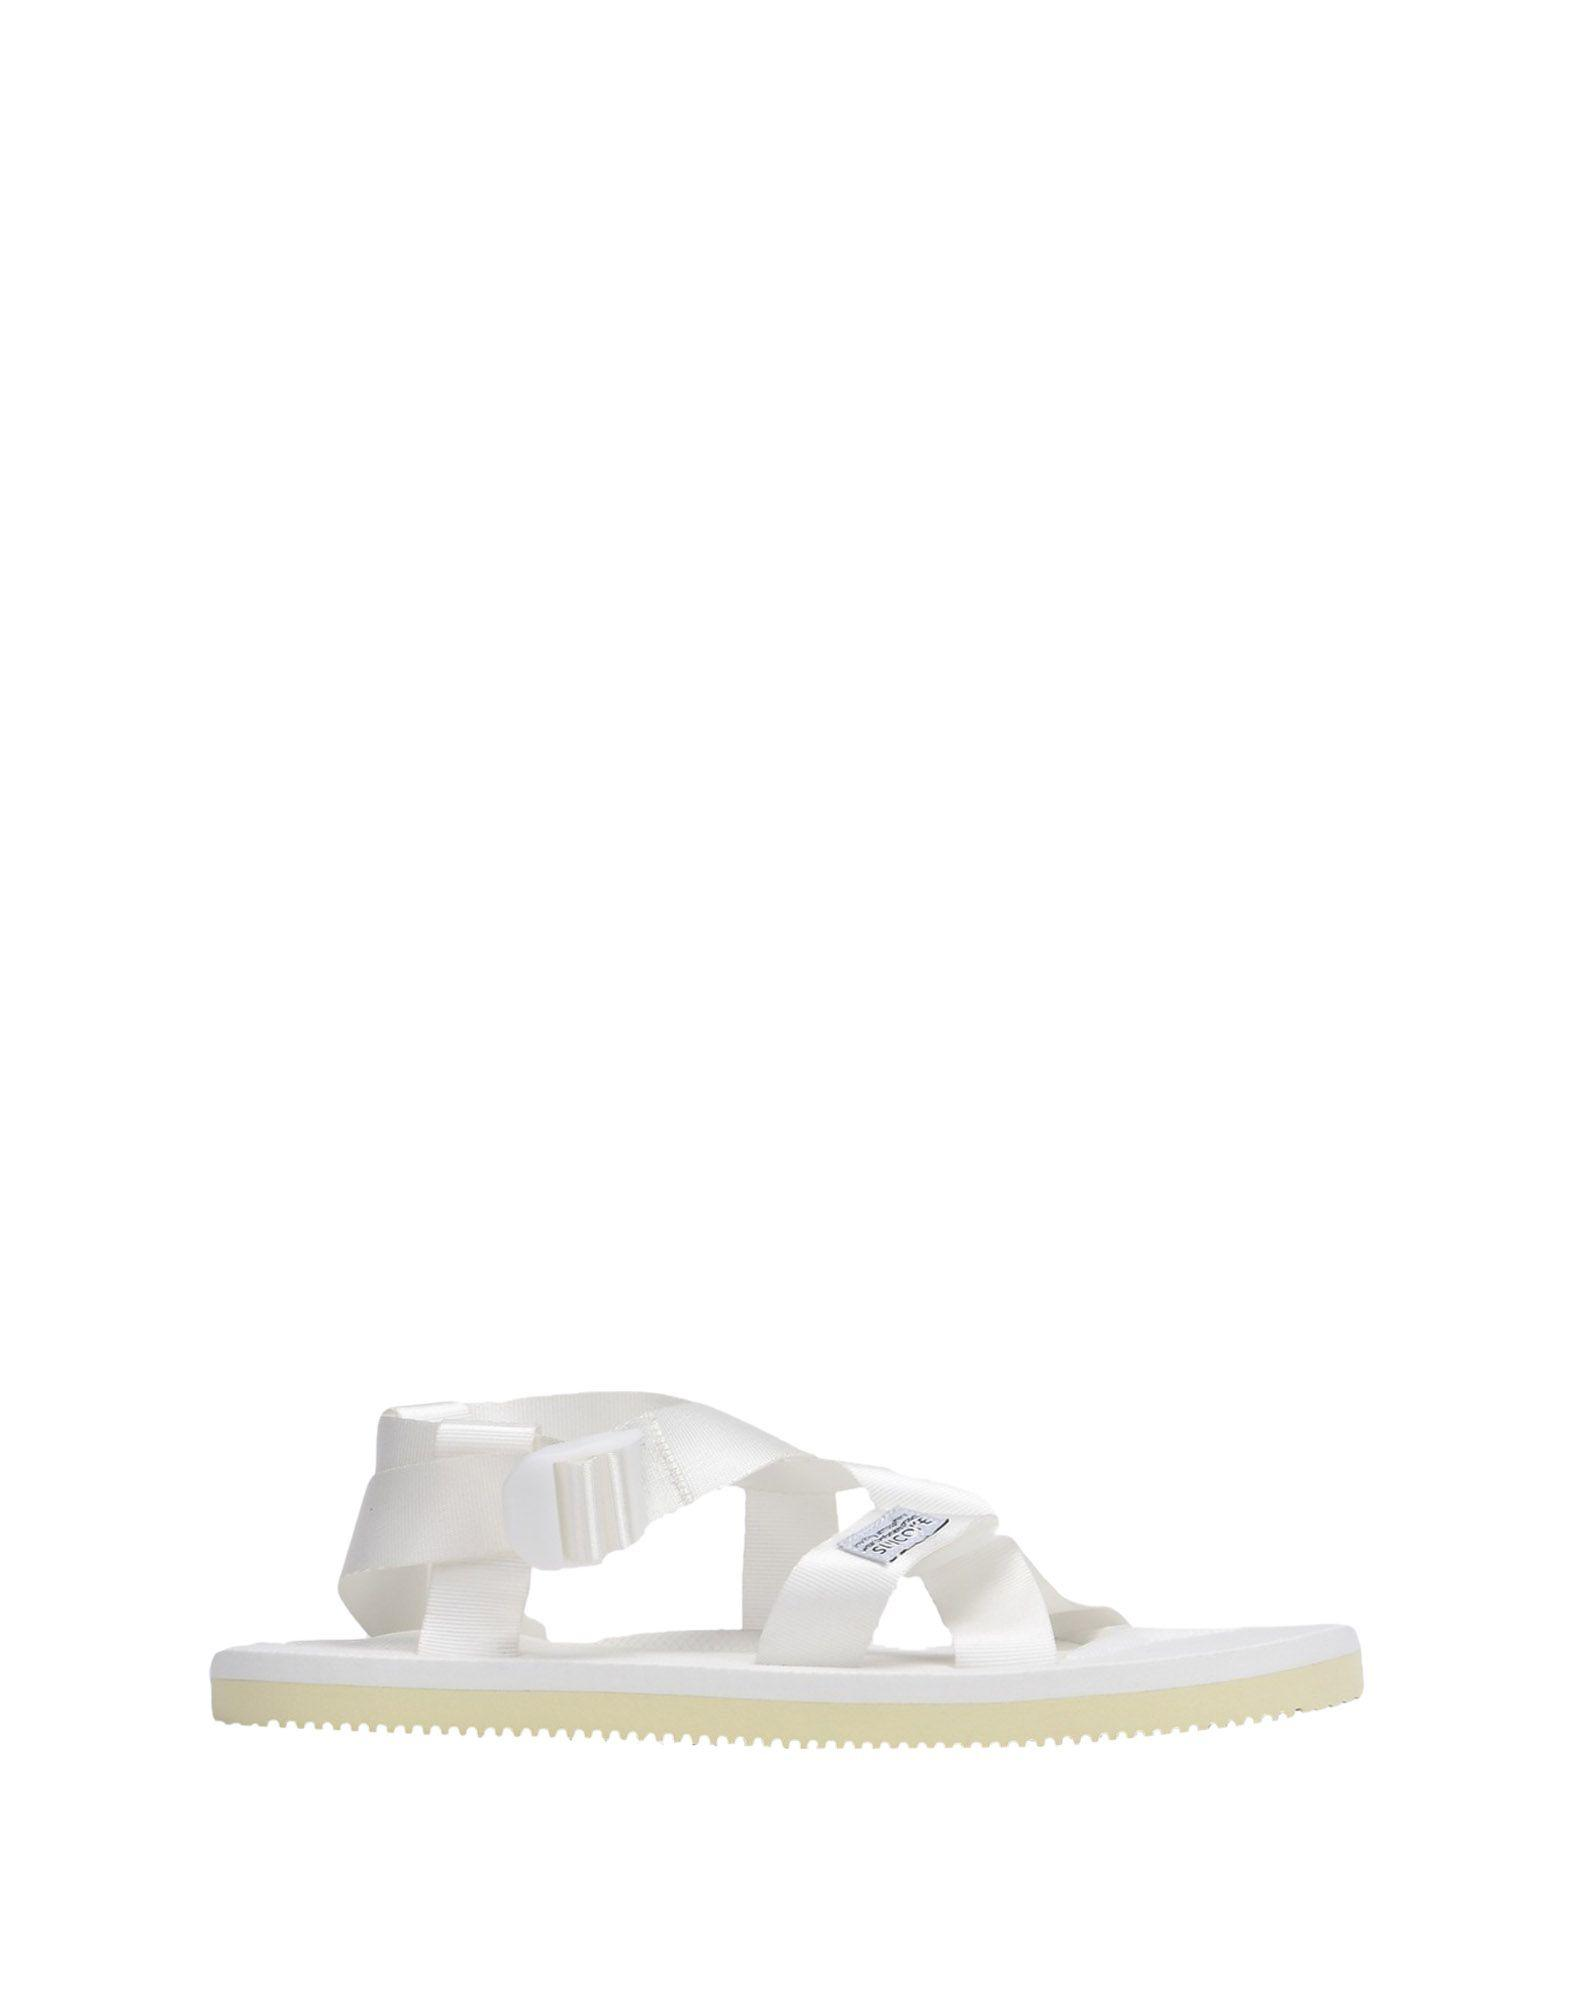 9389adcb6eb Lyst - Suicoke Sandals in White